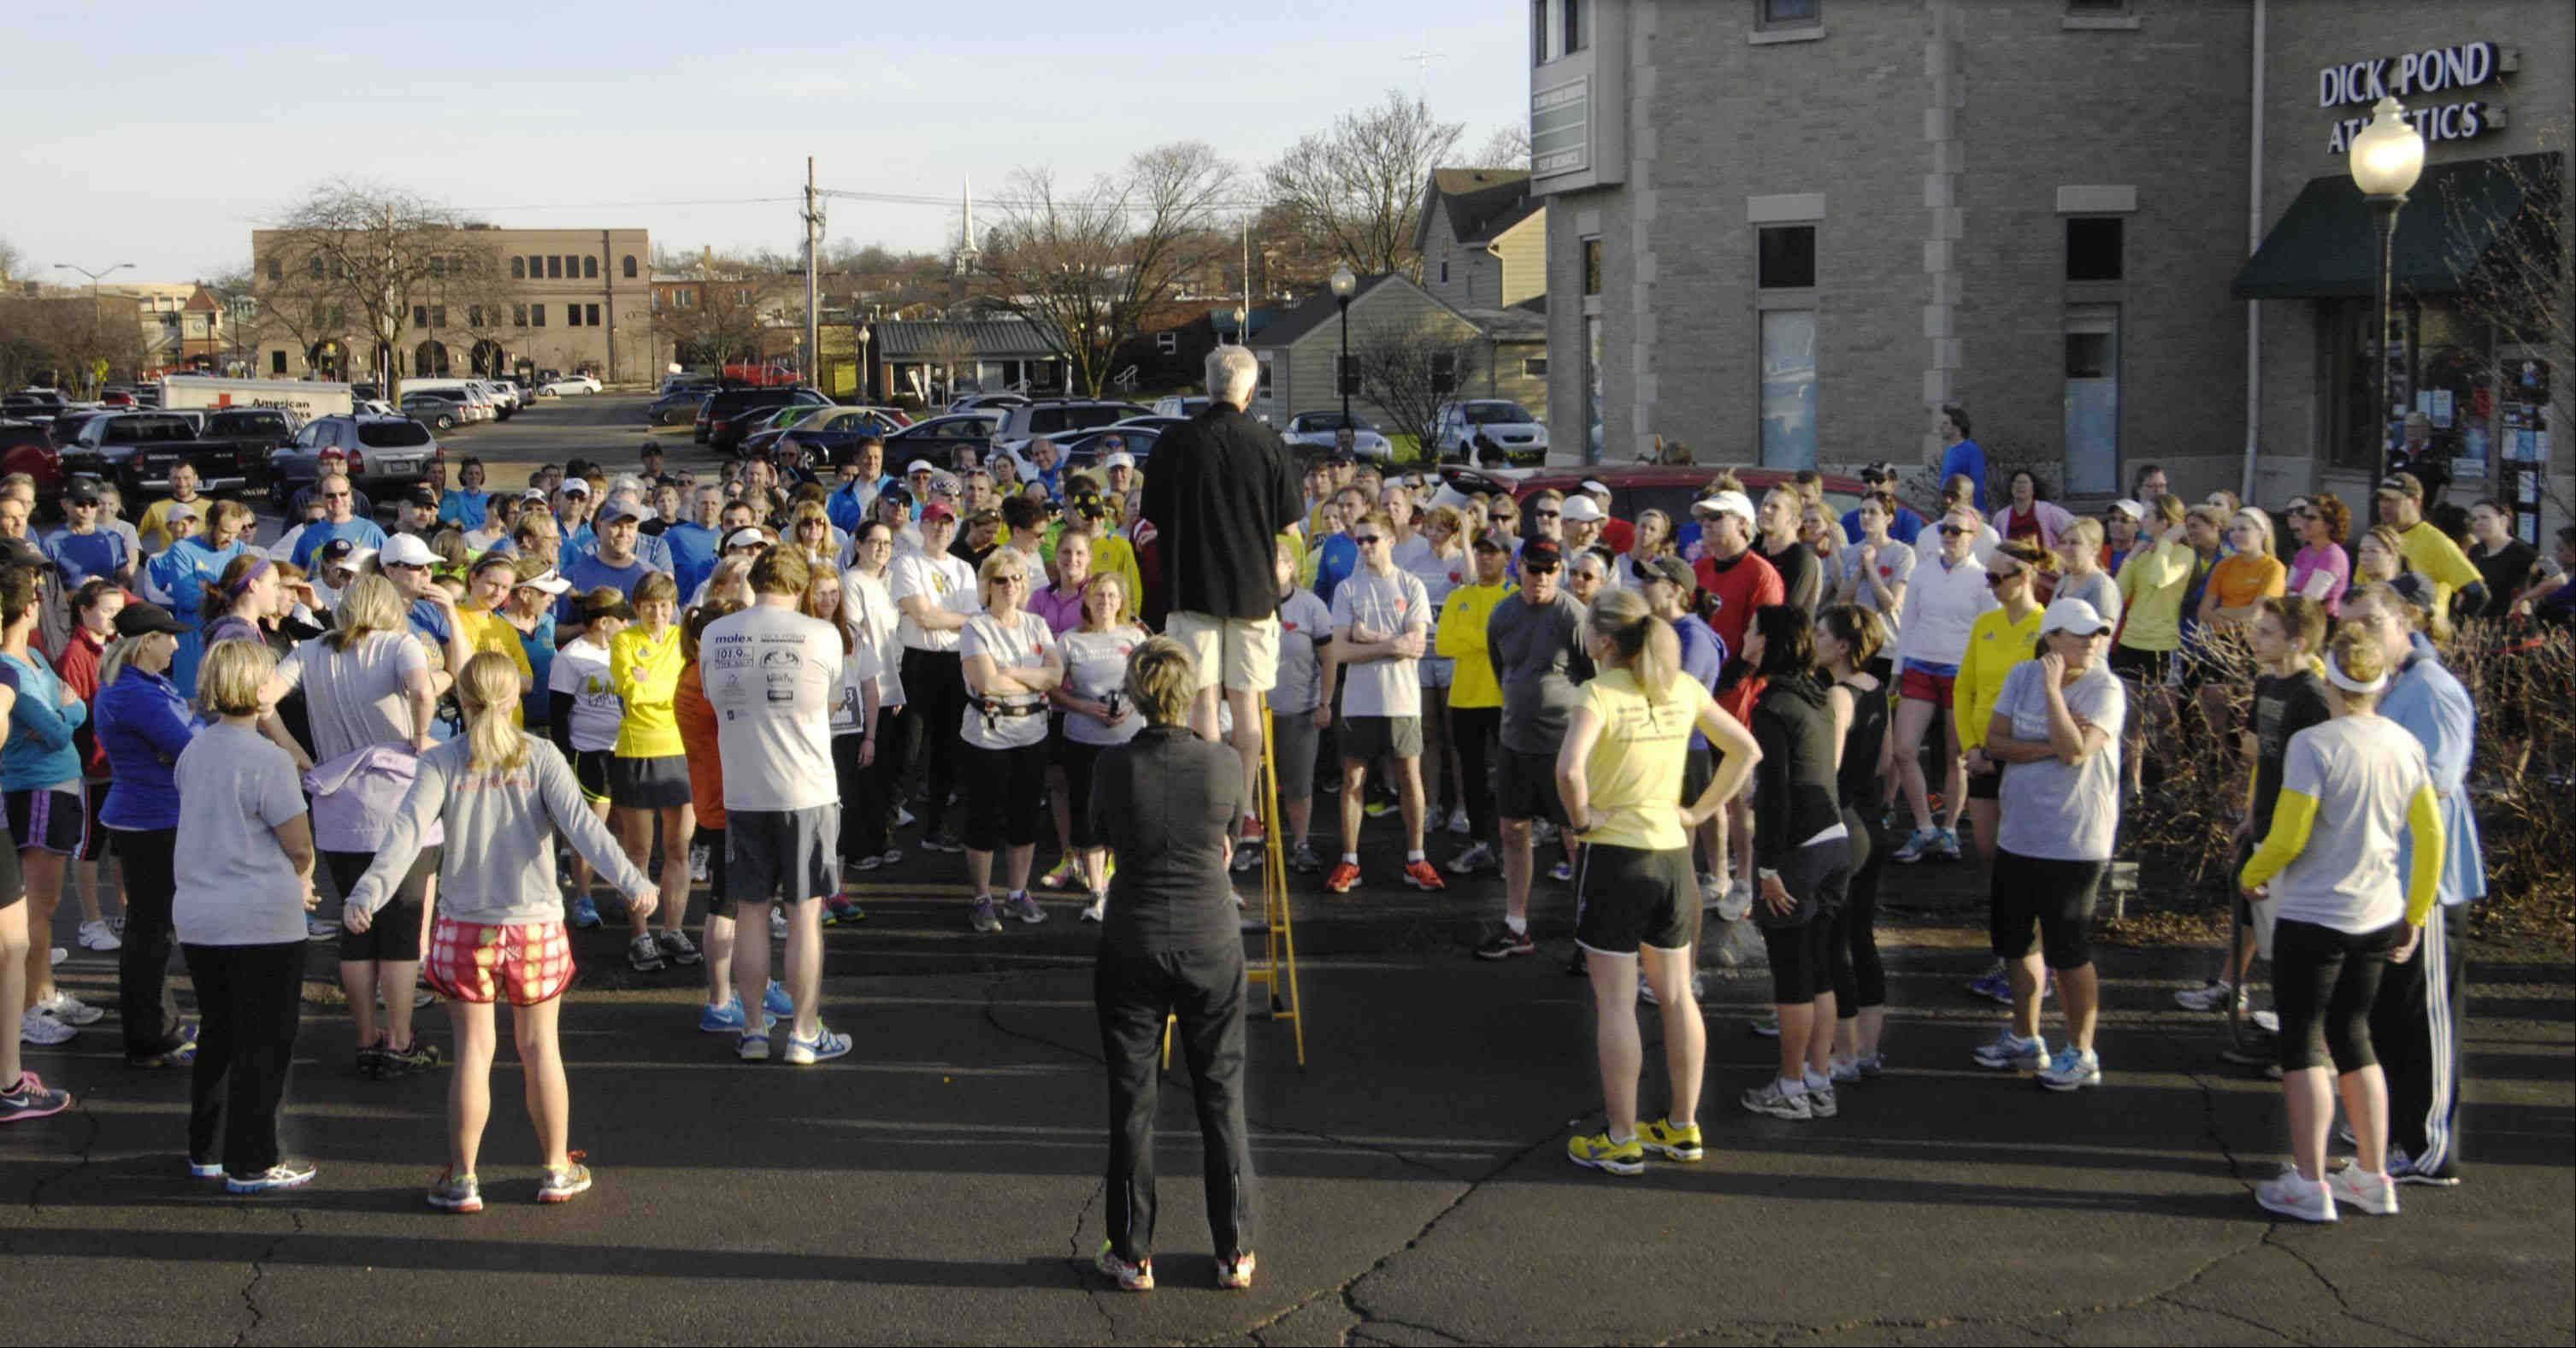 Dick Pond Athletics manager Glen Kamps stands on a ladder to organize dozens of runners Monday evening for a benefit run to honor the Boston community that was the target of terrorists bombs.